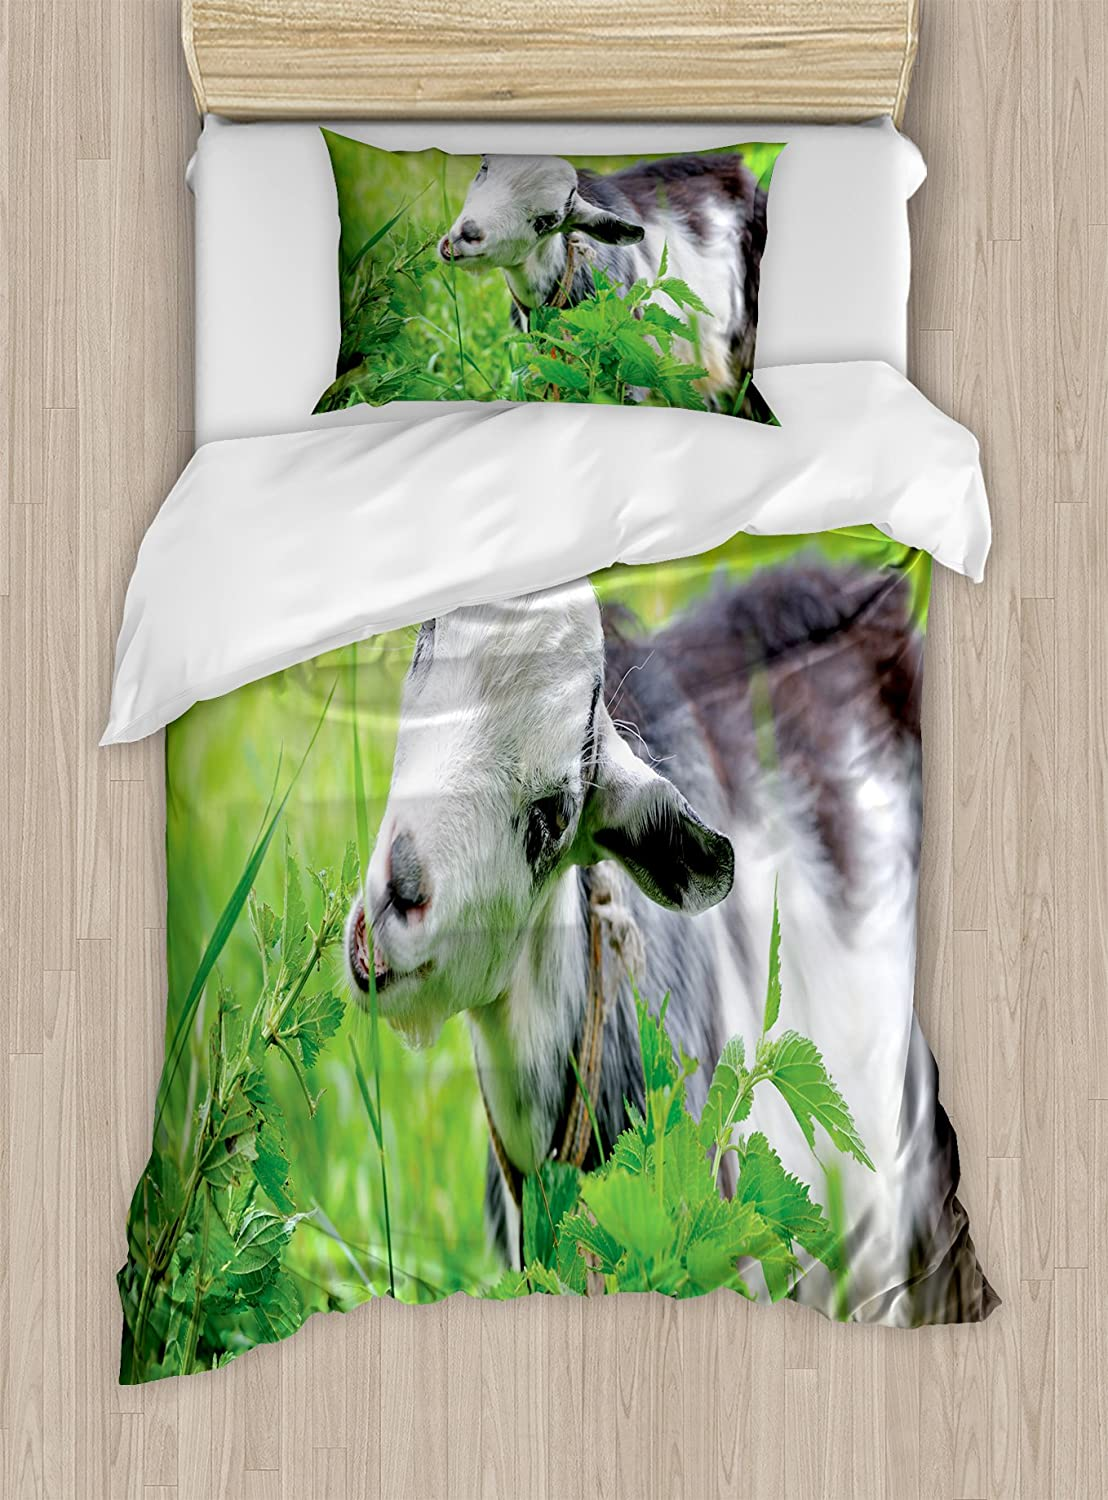 Lunarable Goat Duvet Cover Set, Domestic Farm Mammal on a Pasture Grazing on The Grass Spring Fresh Leaves, Decorative 2 Piece Bedding Set with 1 Pillow Sham, Twin Size, Fern Green